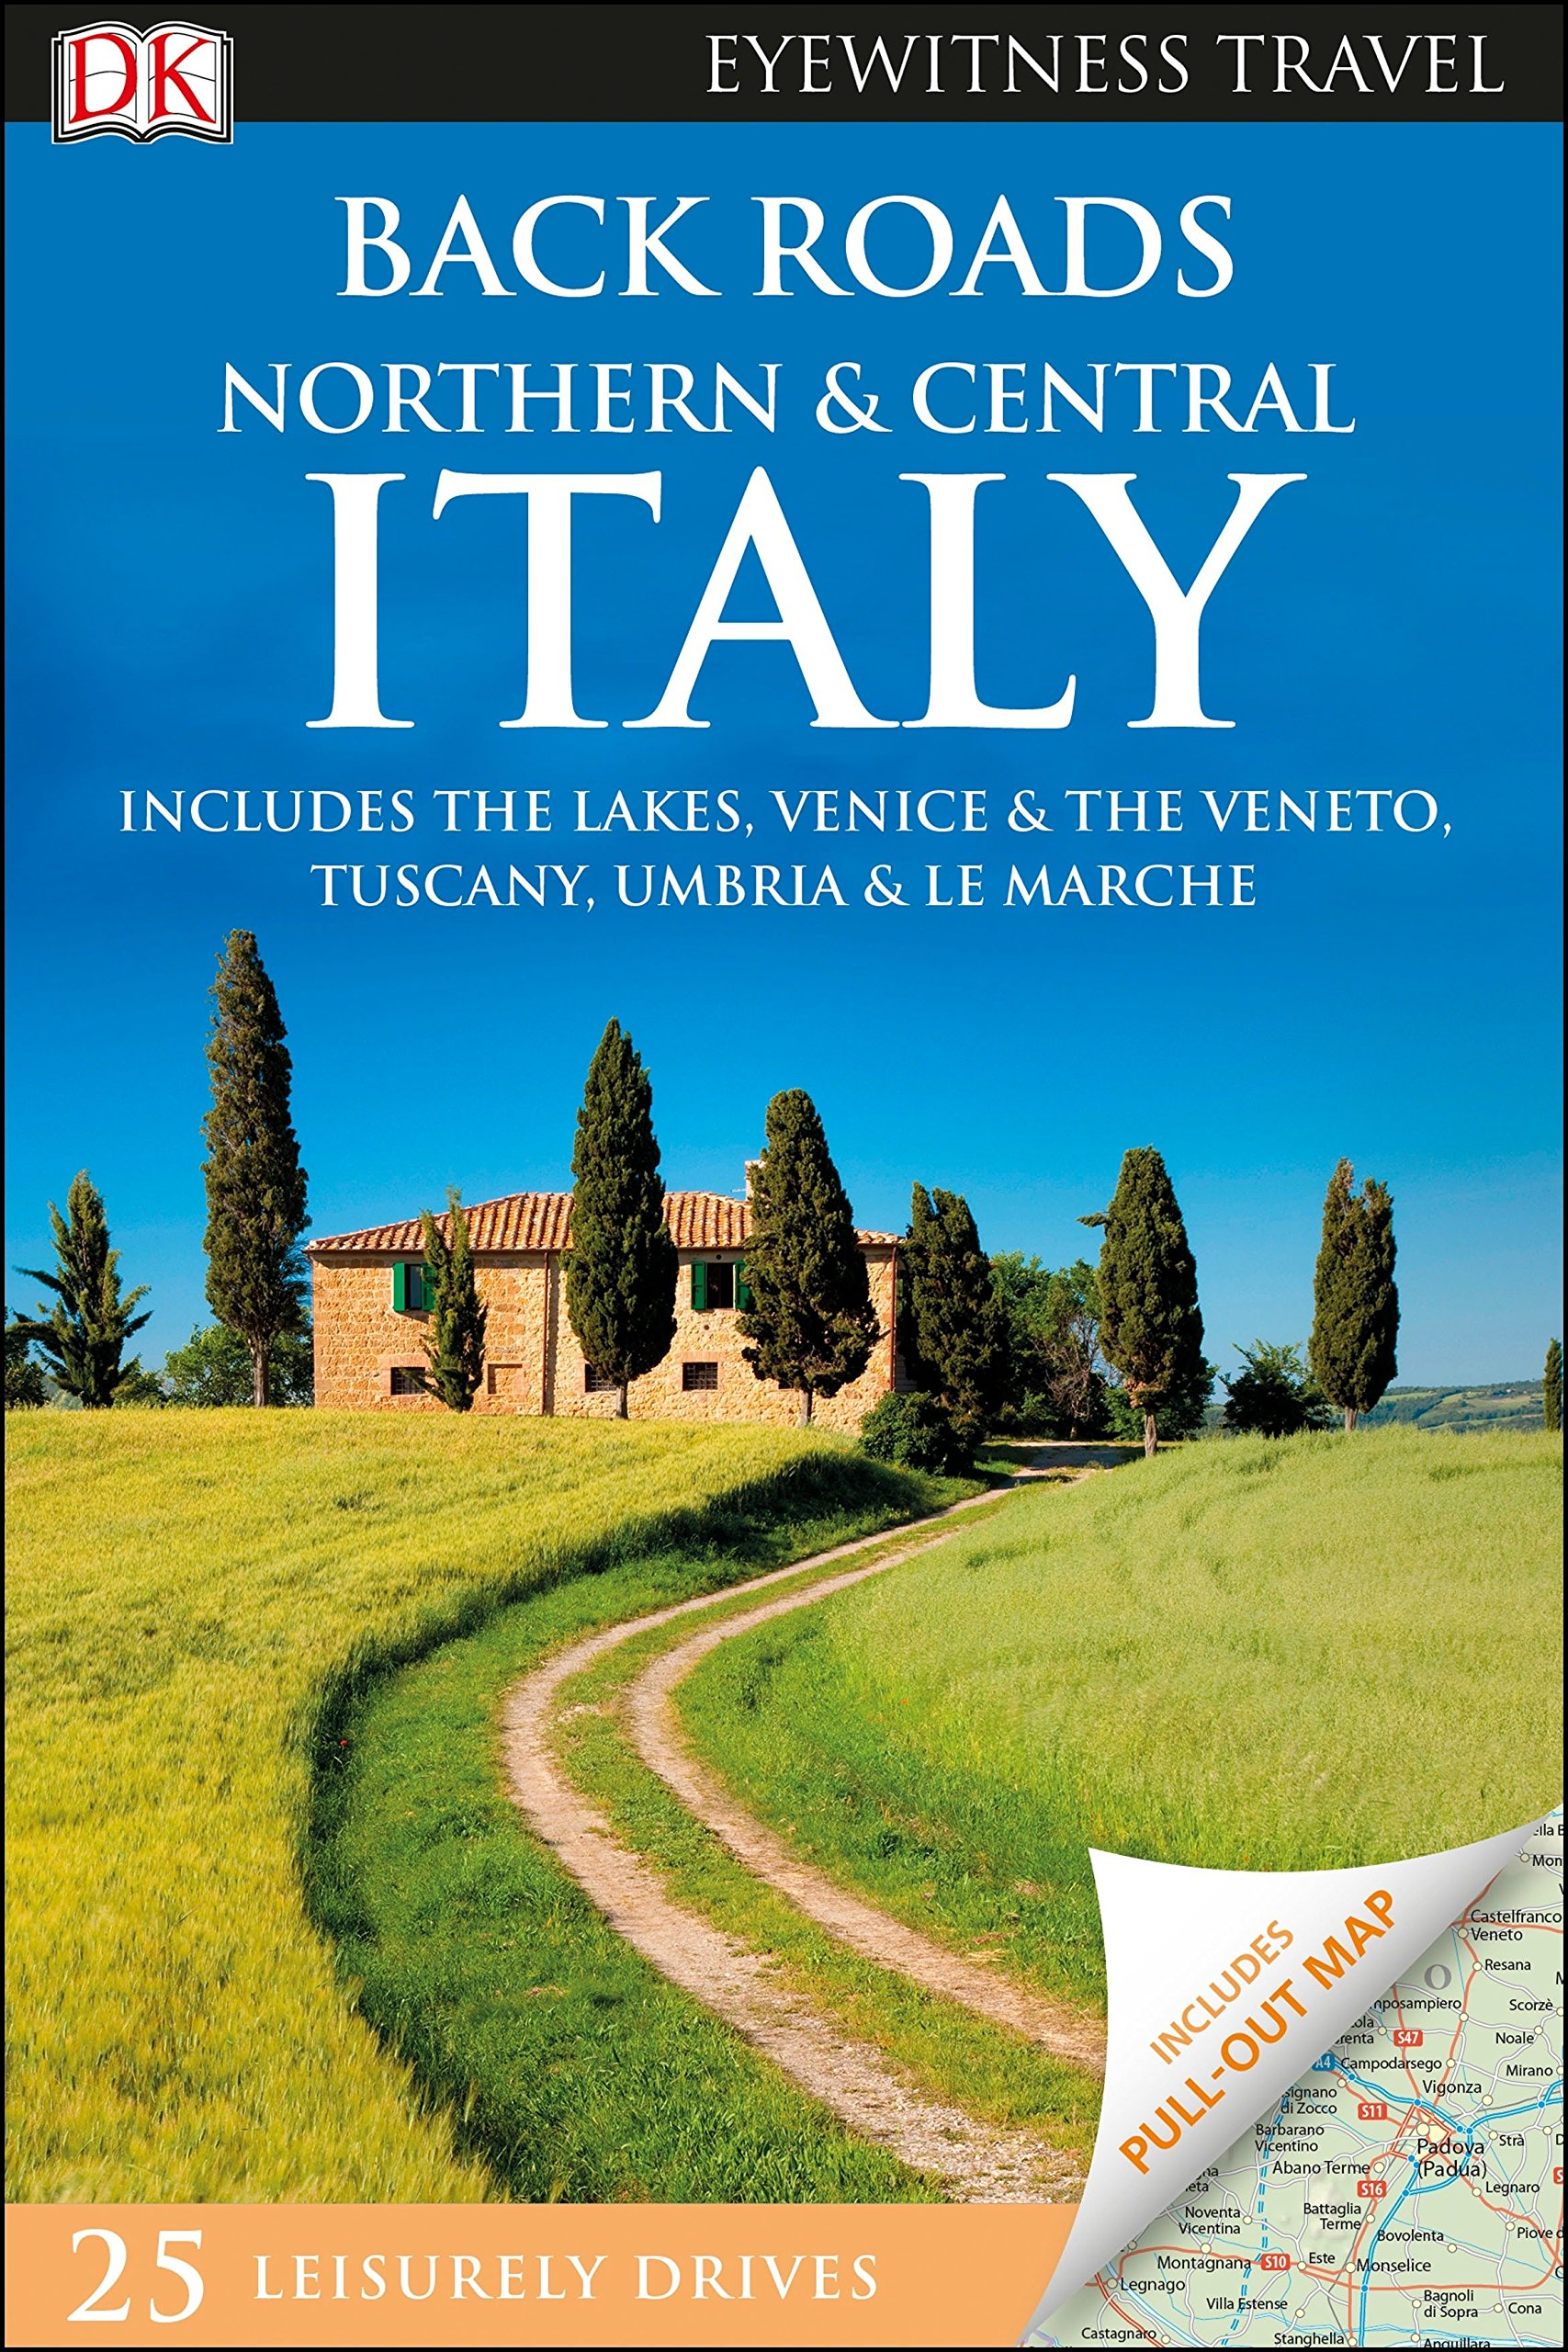 Back Roads Northern and Central Italy (DK Eyewitness Travel Guide) Paperback – March 20, 2018 DK Travel 1465467750 Europe - Italy Food